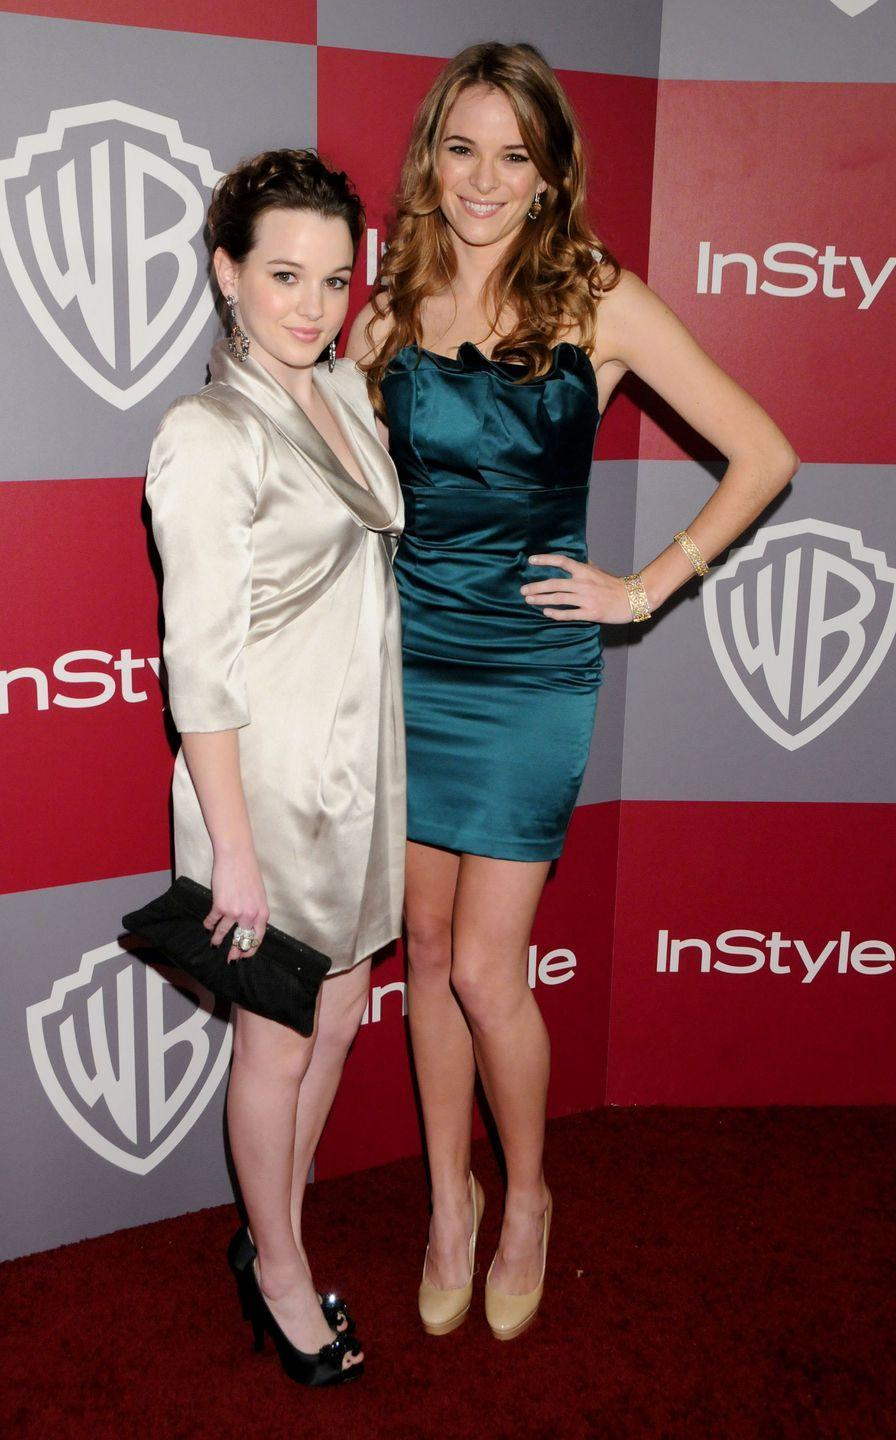 "<p>Both Danielle and Kay Panabaker found fame on Disney in the mid-2000s. The two look so much alike that Danielle played the role of Kay's alter ego in <em>Read It and Weep</em>. While Danielle is still acting, <a href=""https://www.imdb.com/name/nm0659048/bio"" rel=""nofollow noopener"" target=""_blank"" data-ylk=""slk:Kay has retired and is currently working as a zoologist"" class=""link rapid-noclick-resp"">Kay has retired and is currently working as a zoologist</a>. </p>"